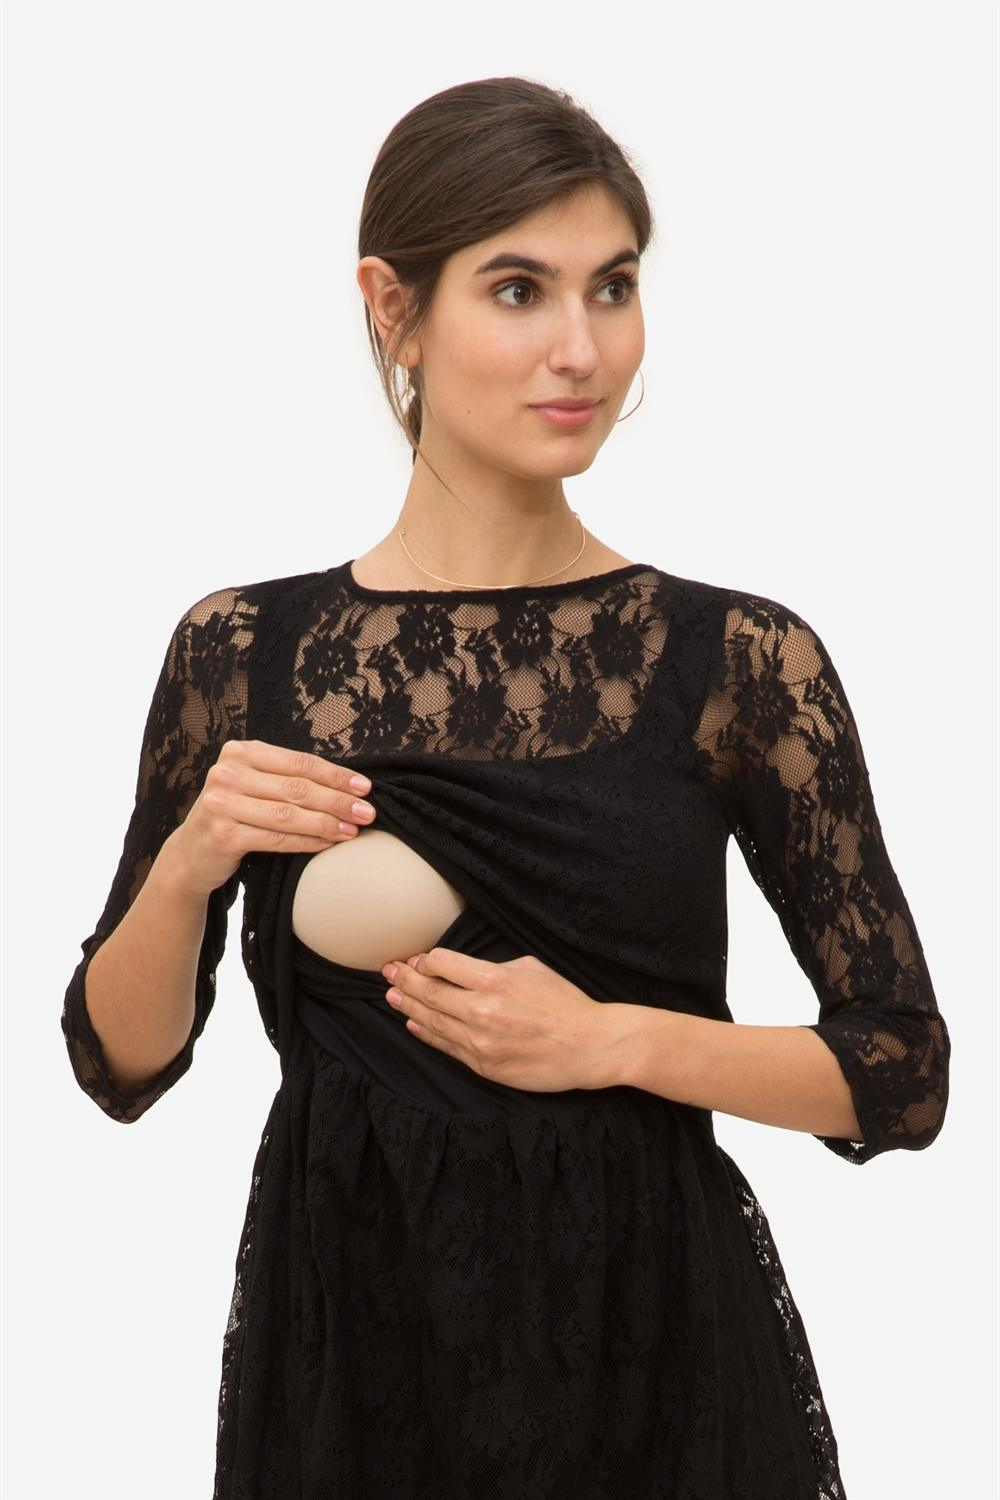 Black Lace nursing dress with Underdress, access fro breastfeeding